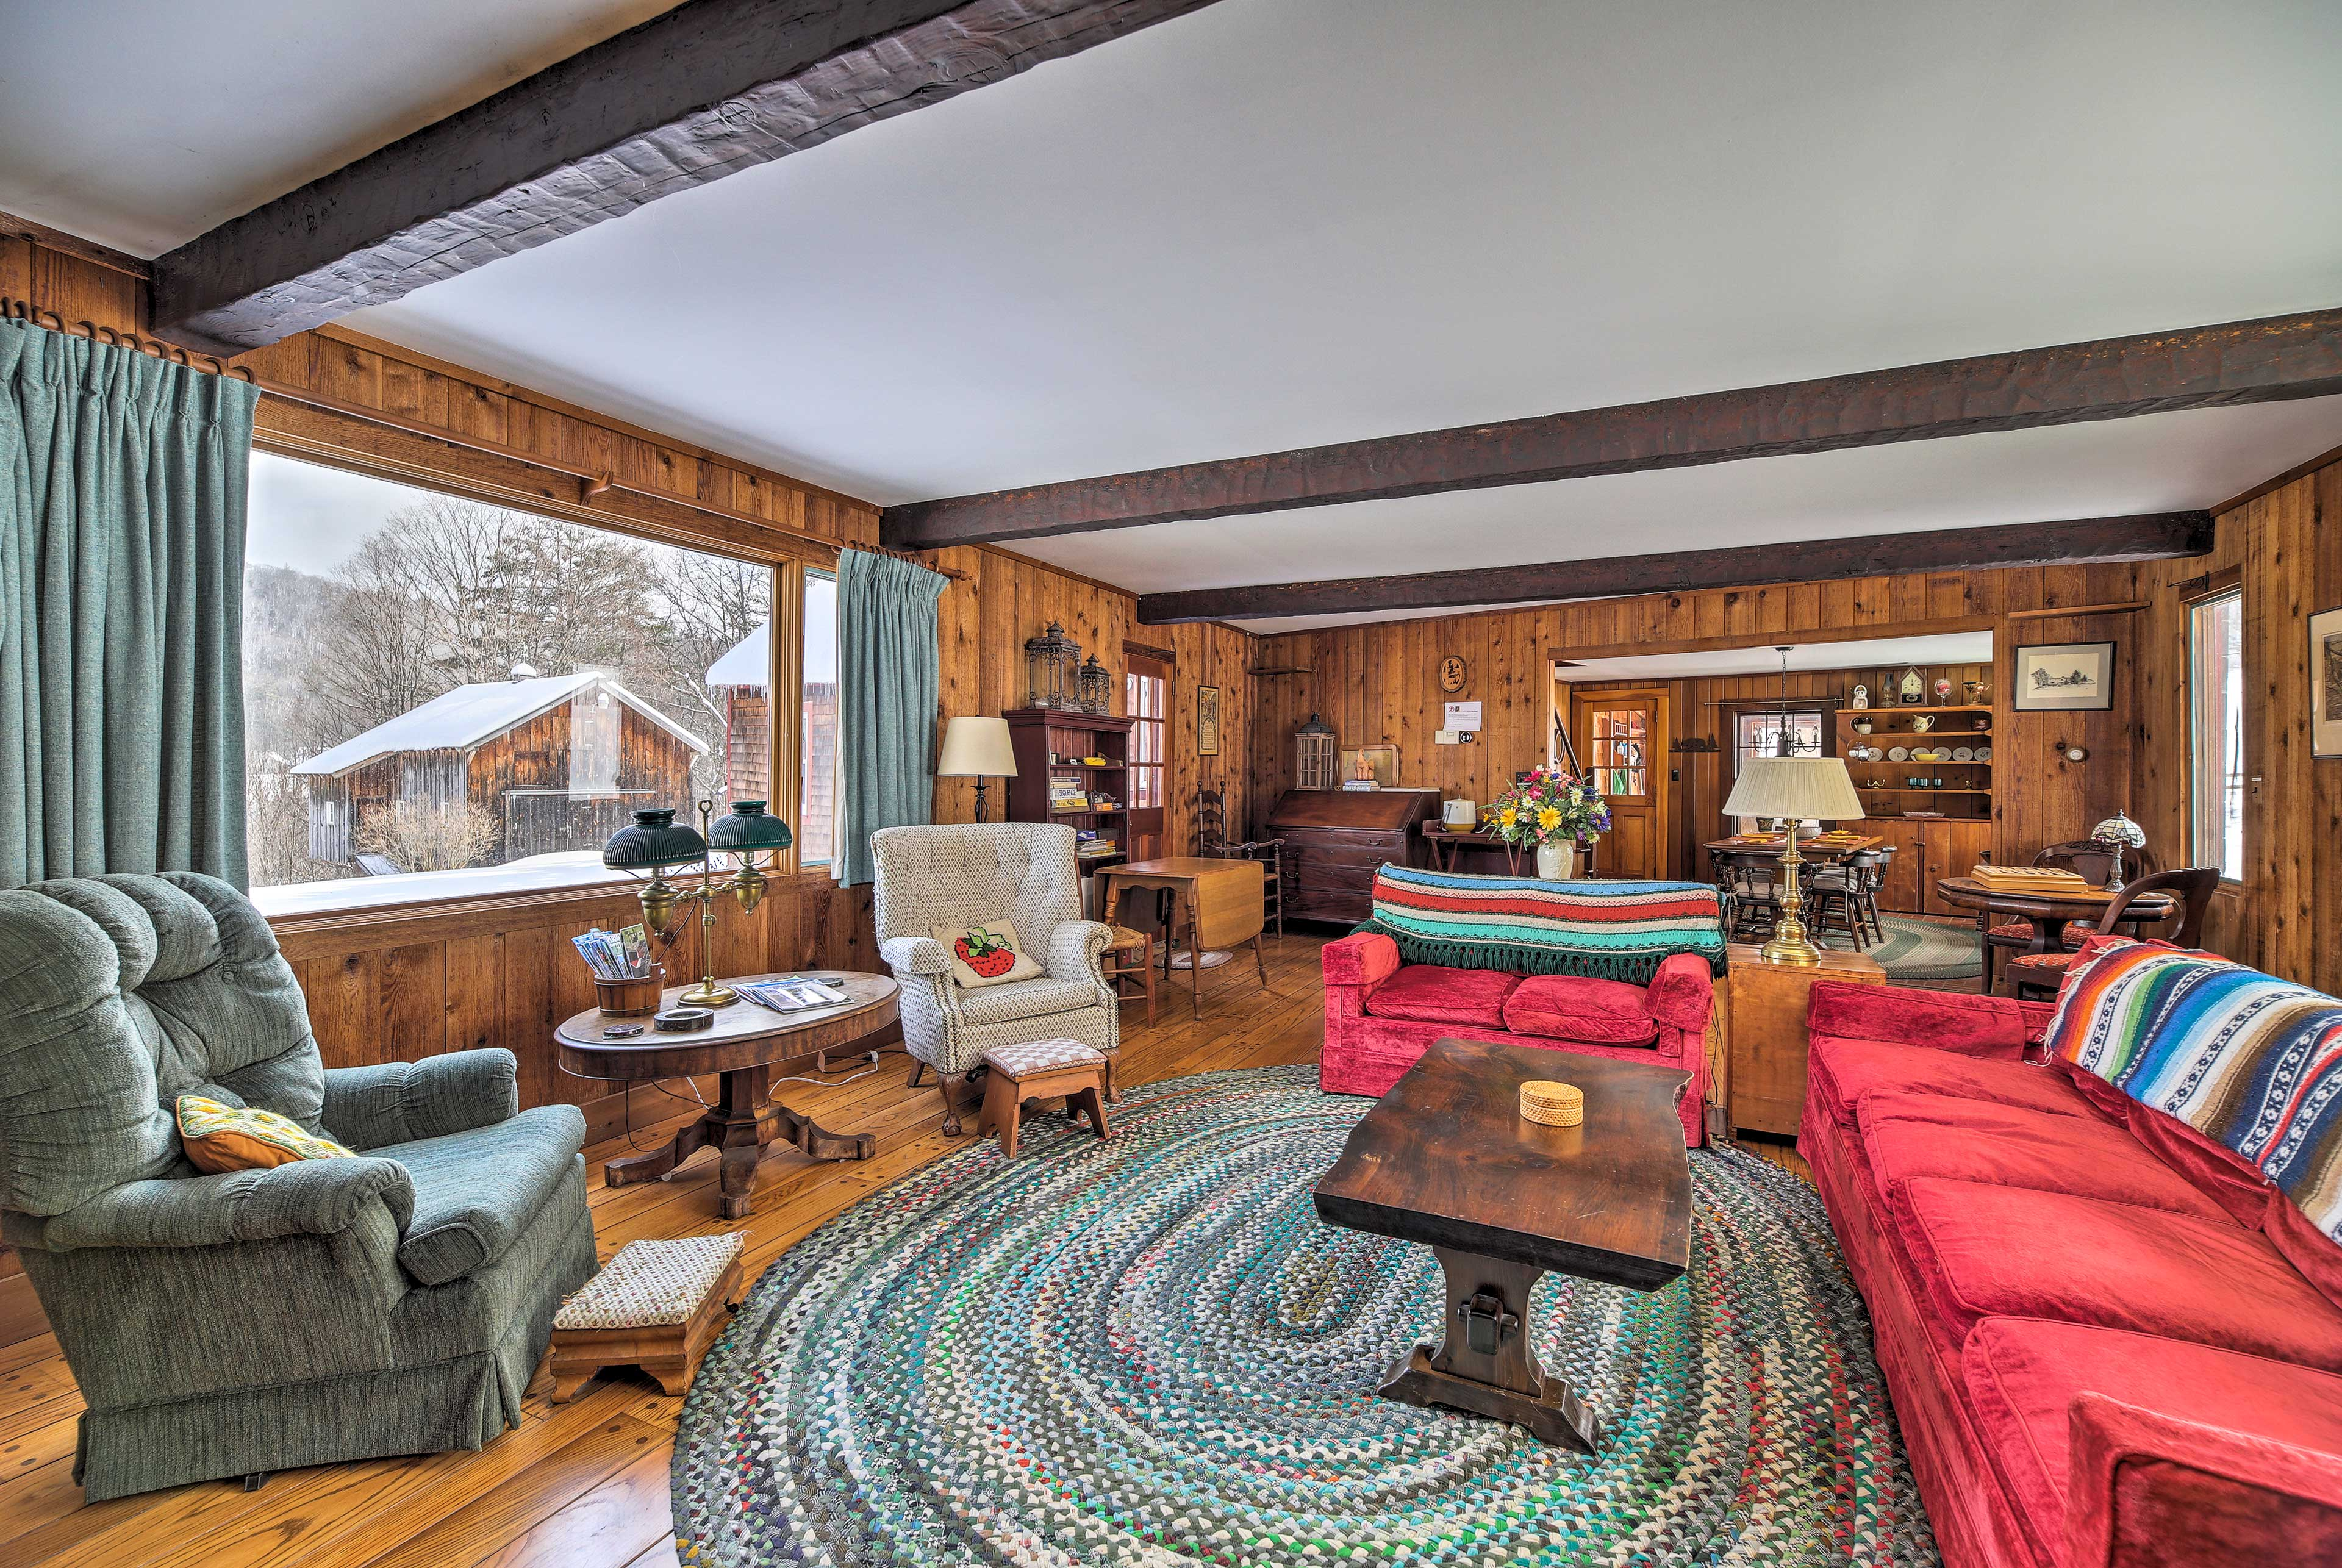 Built in 1802, this home boasts lots of its classic charm.